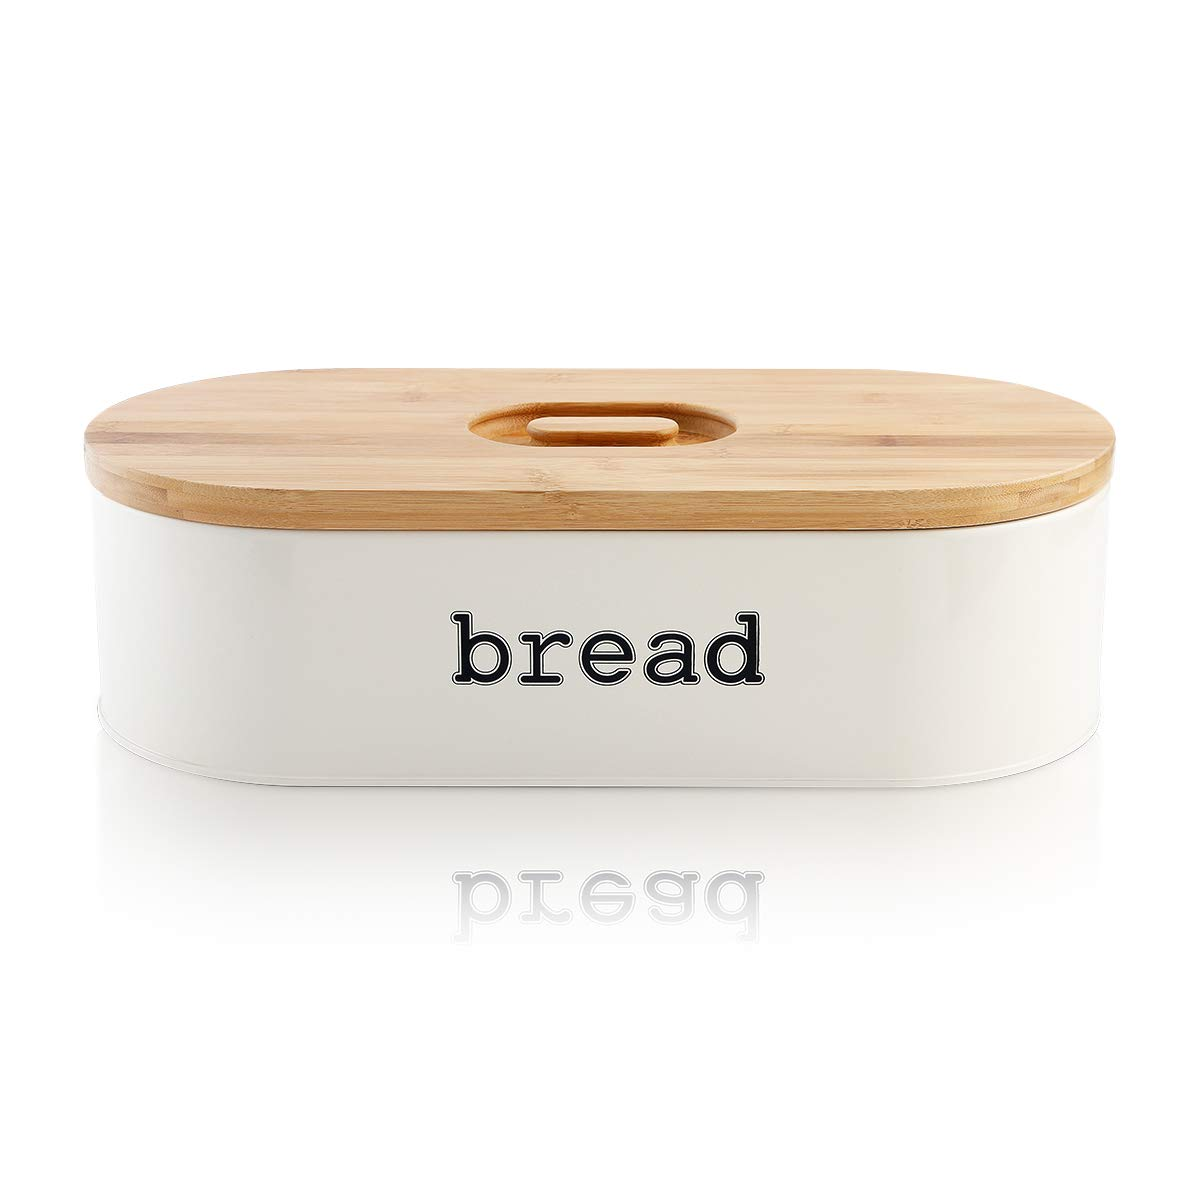 SveBake Metal Bread Box for Kitchen Counter Vintage & Retro Bread Bin with Bamboo Lid, Cream (Included a Free PDF Baking E-BOOK)